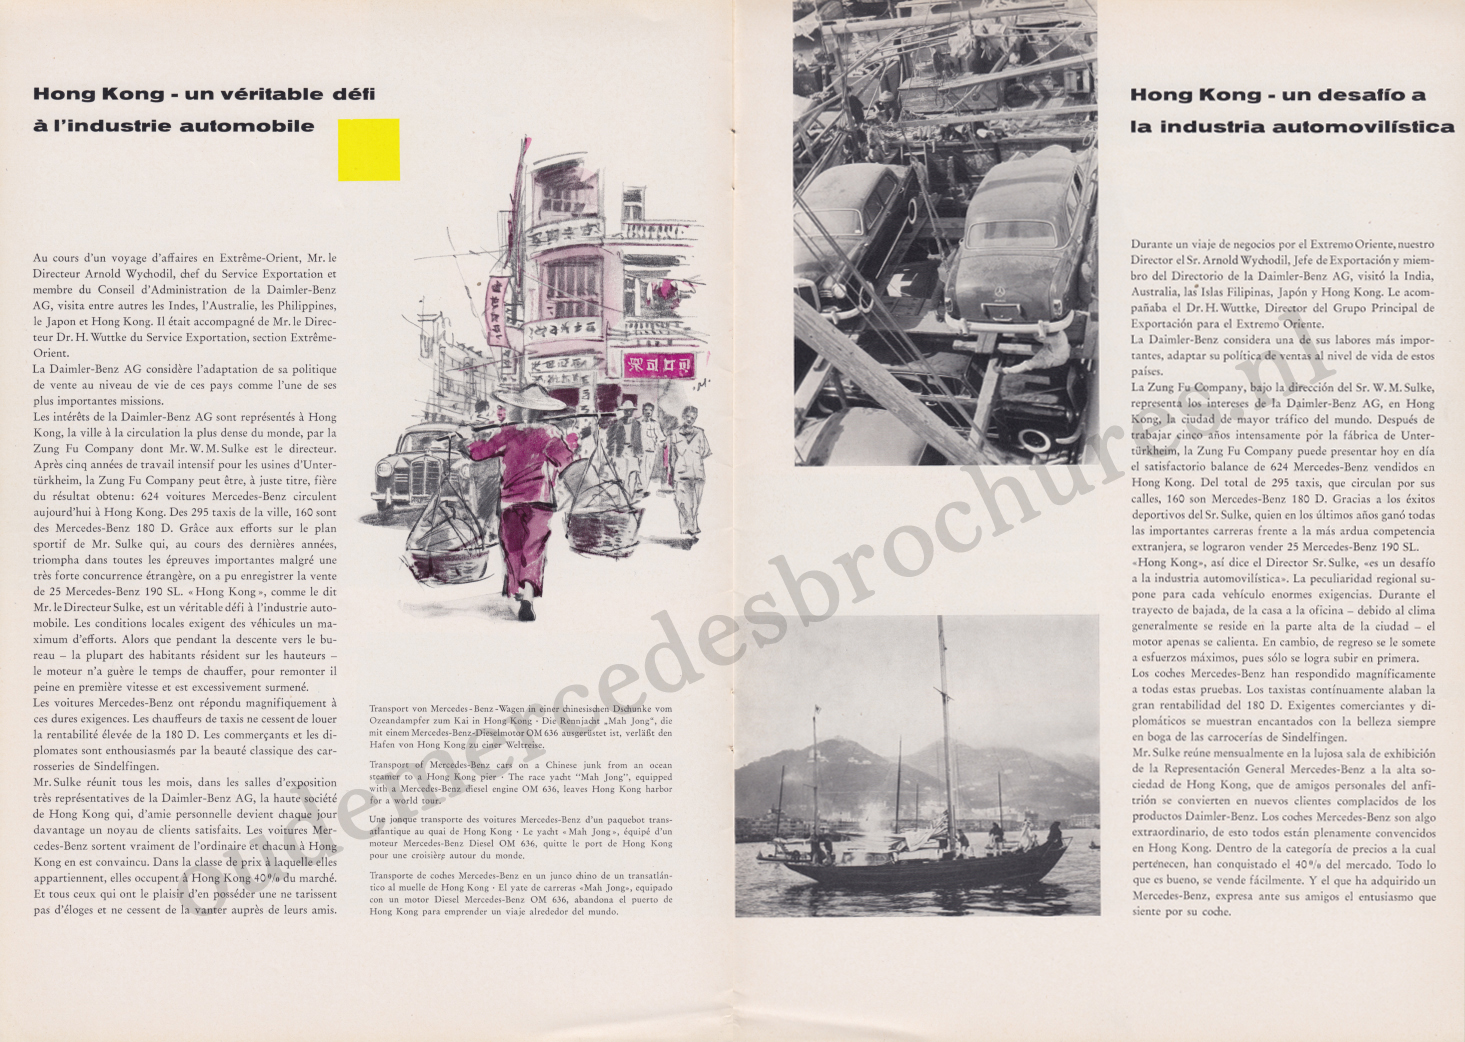 (REVISTA): Periódico In aller welt n.º 29 - Mercedes-Benz no mundo - 1959 - multilingue 005